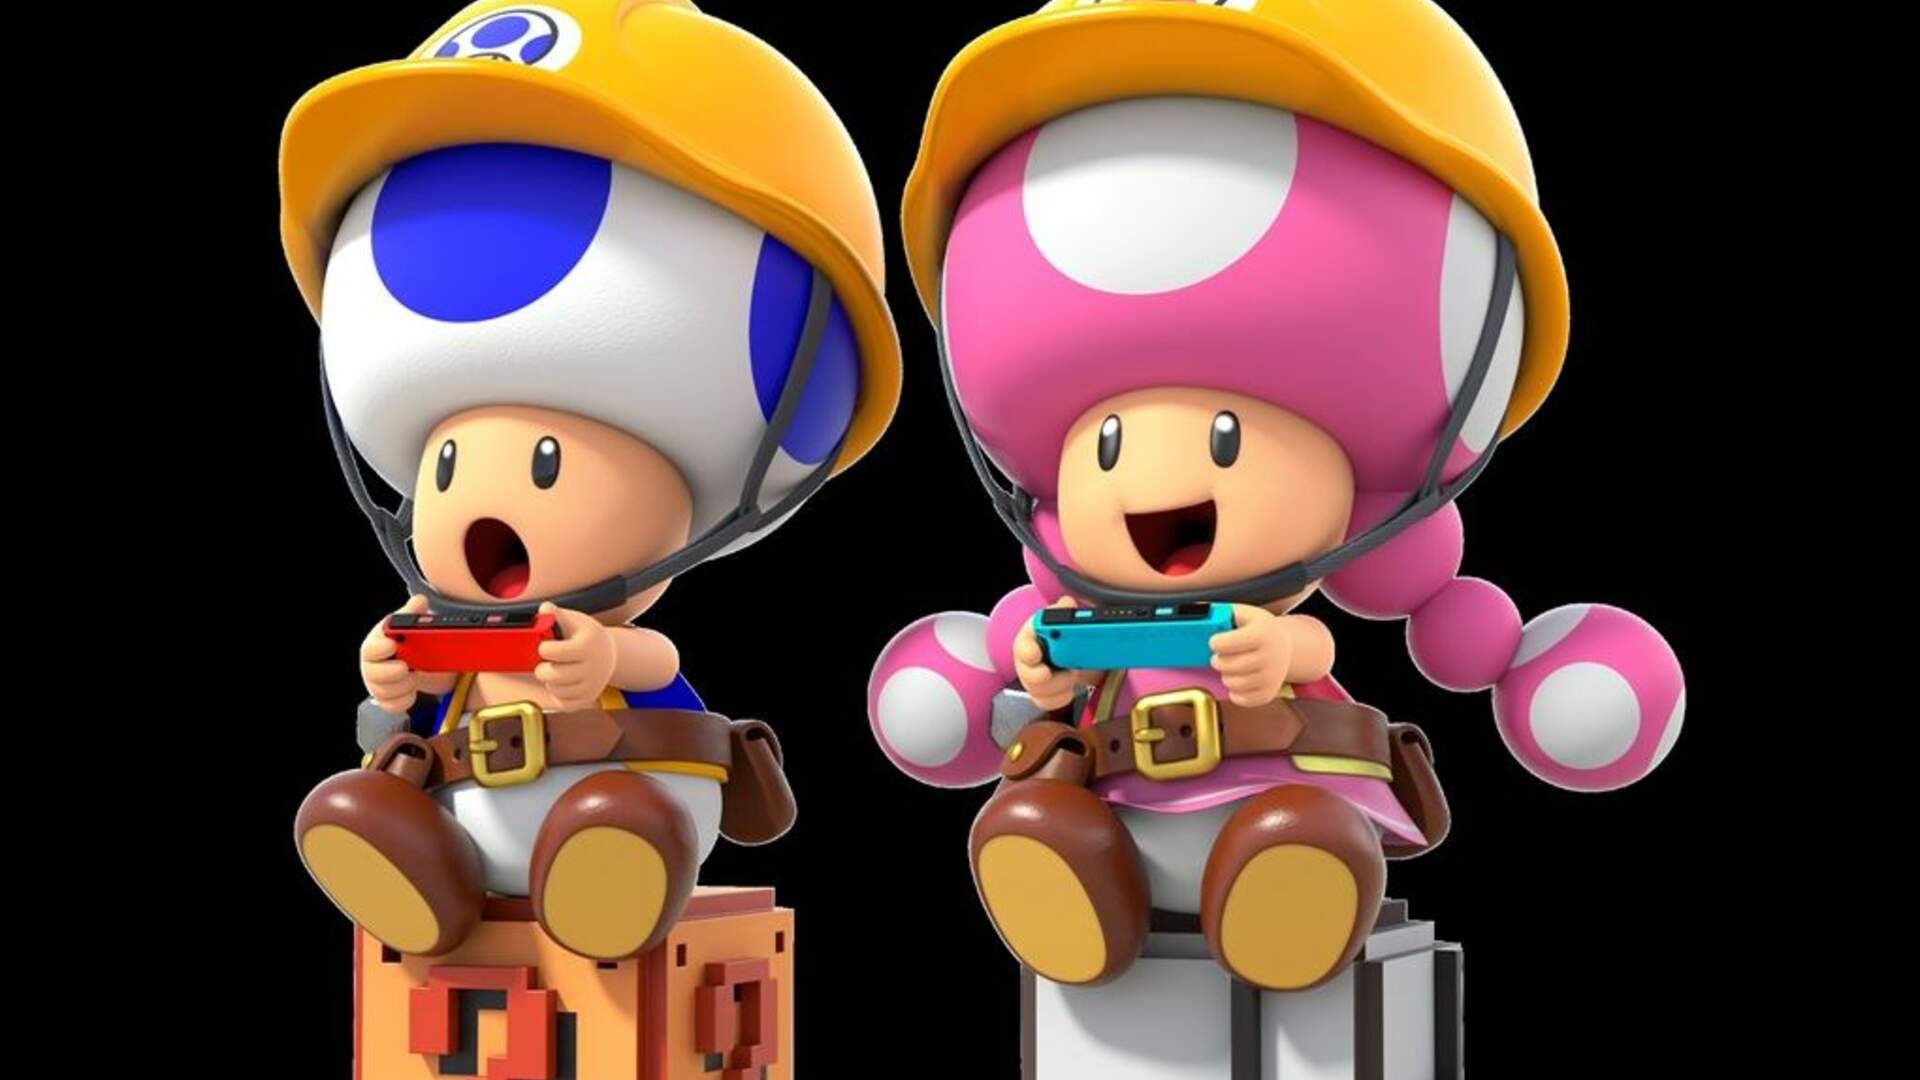 Japan Gets Adorable Super Mario Maker 2 My Nintendo Prizes, North America Gets to Stare Jealously